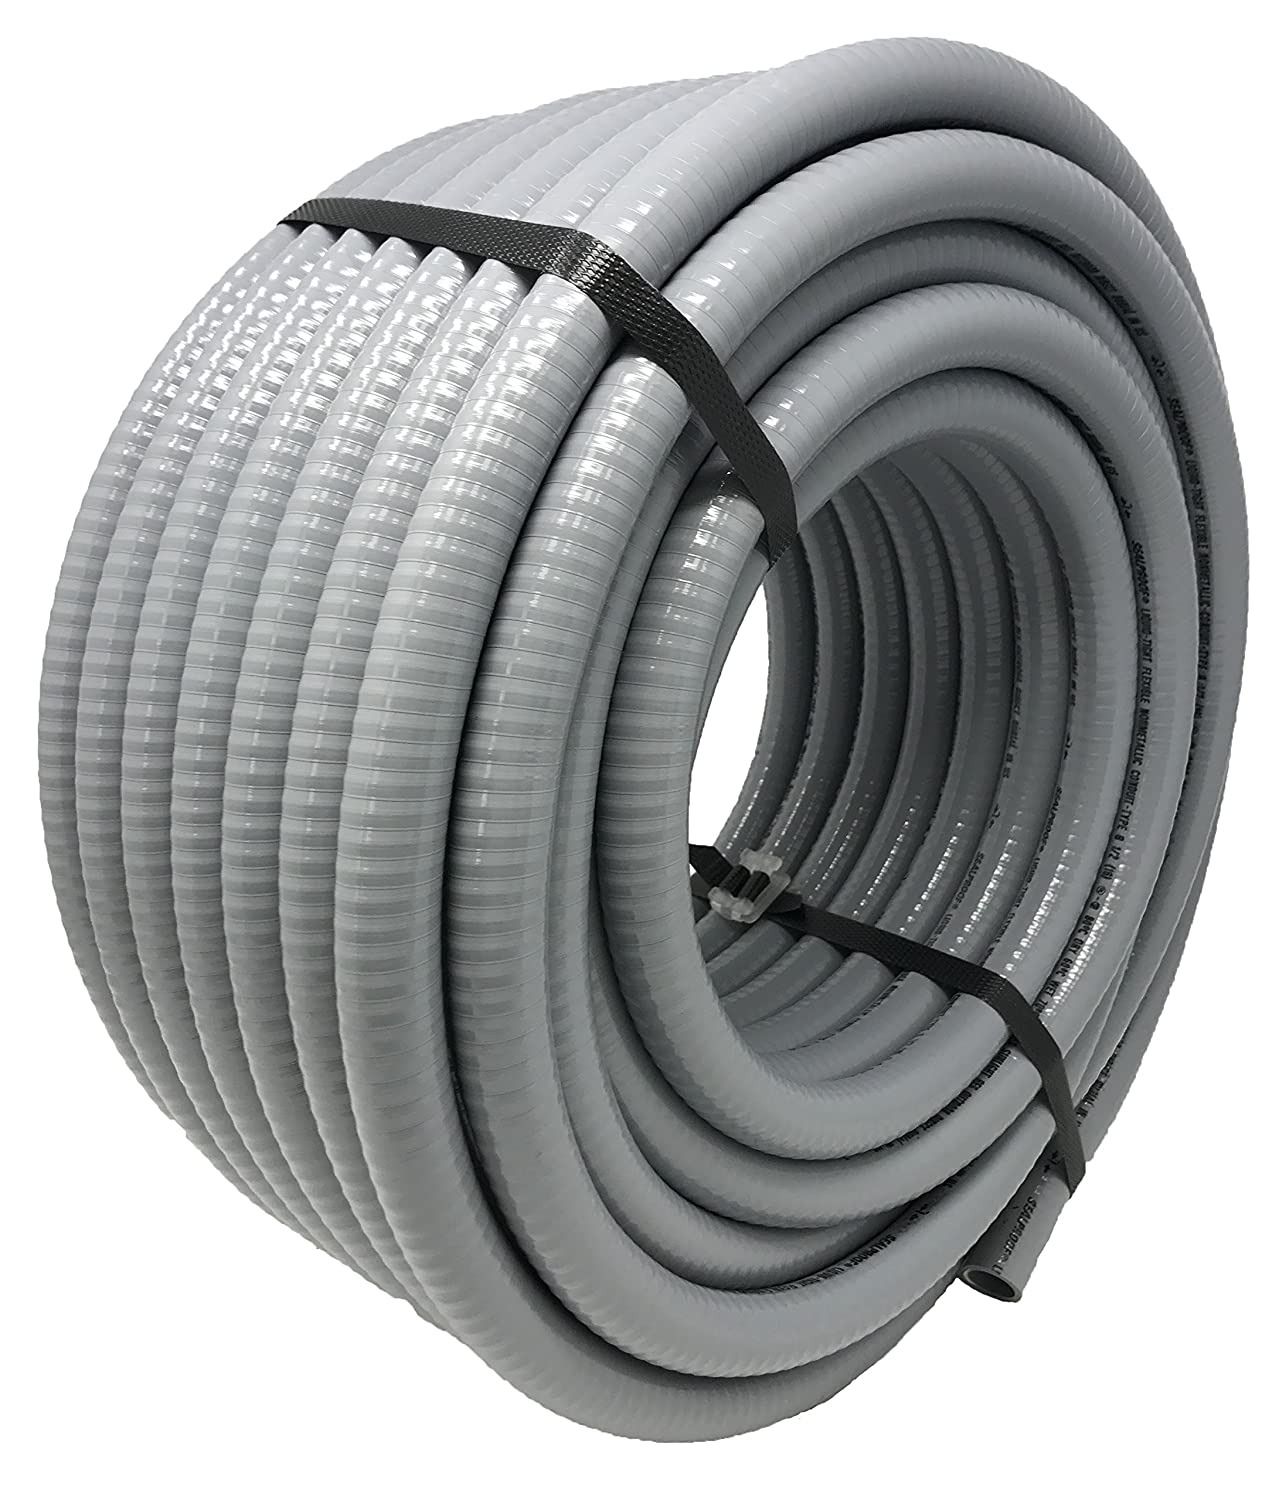 Sealproof 1 2 Inch Flexible Non Metallic Liquid Tight Electrical Conduit For Wire Buy Metal Light Type B Ul Listed Dia 100 Feet